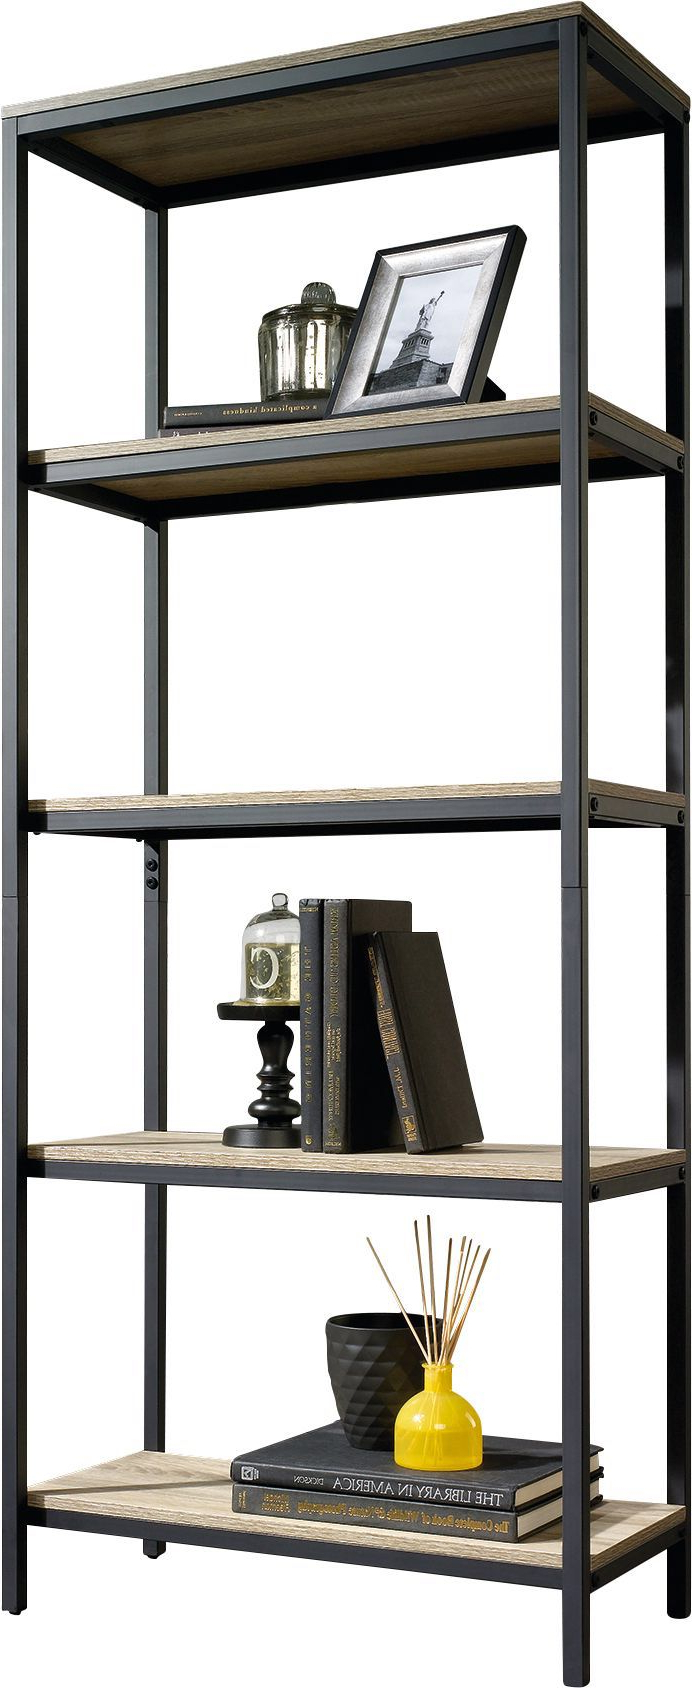 Ermont Etagere Bookcases Regarding Favorite Ermont Etagere Bookcase (Gallery 6 of 20)